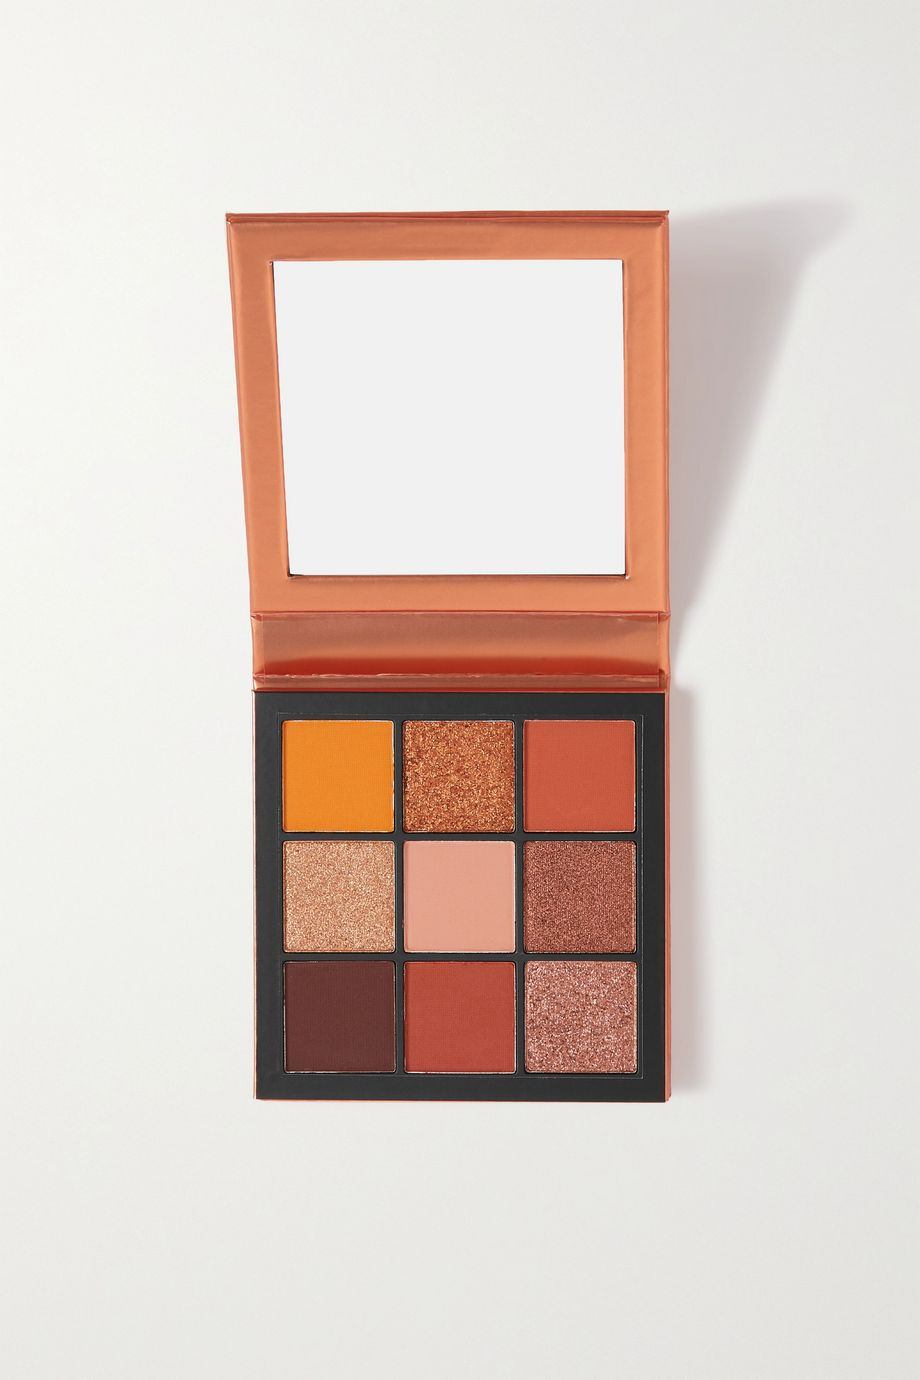 Huda Beauty Kayali Darling Set